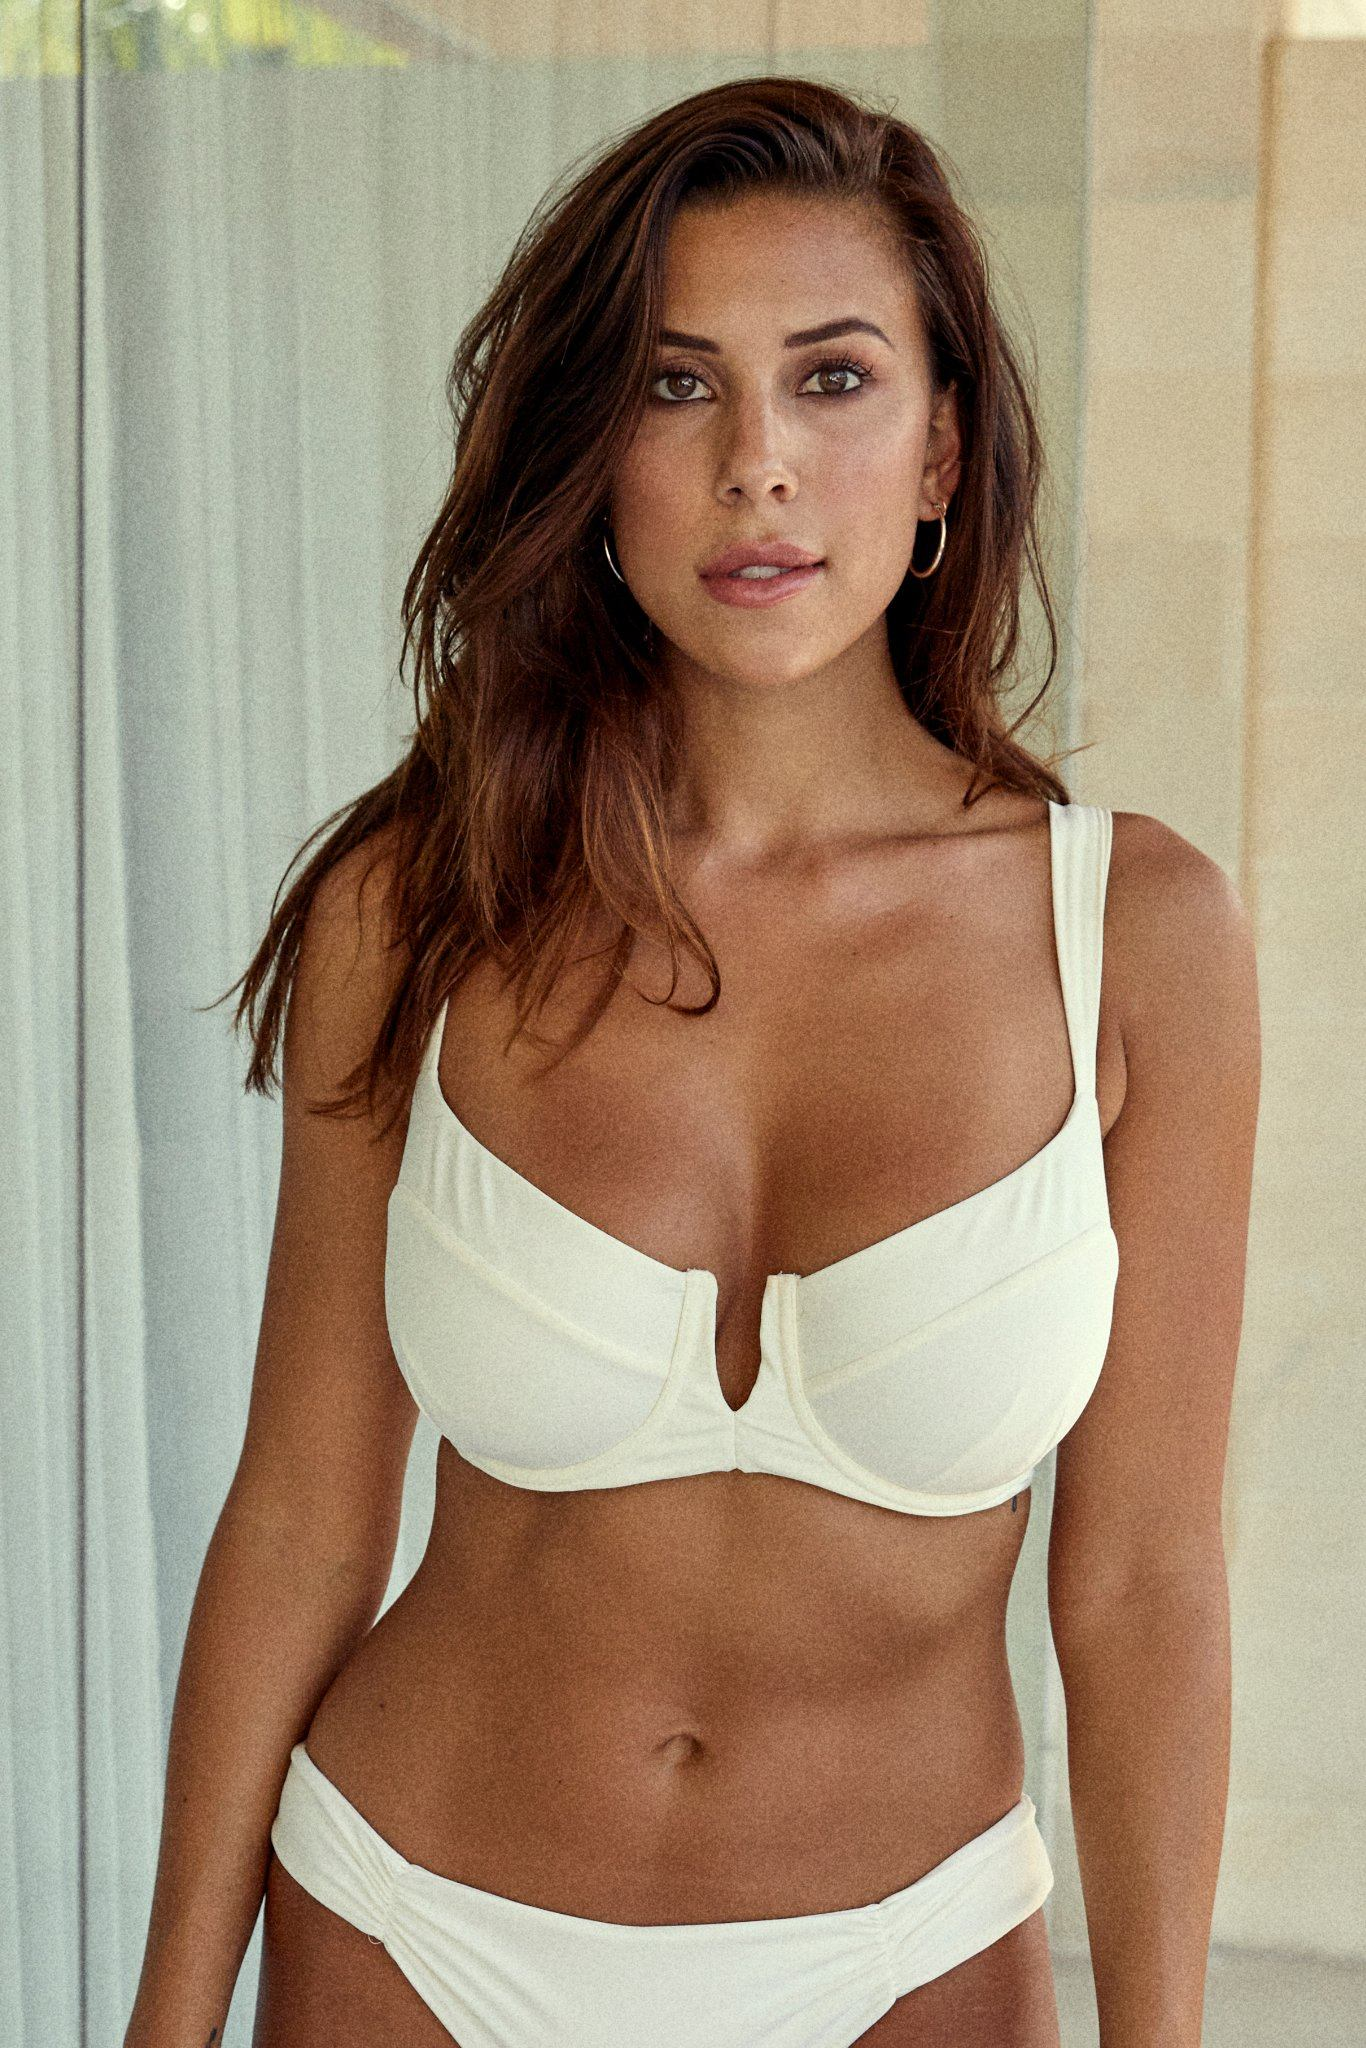 Clovelly Top by monday swimwear, available on mondayswimwear.com for $94 Devin Brugman Top Exact Product